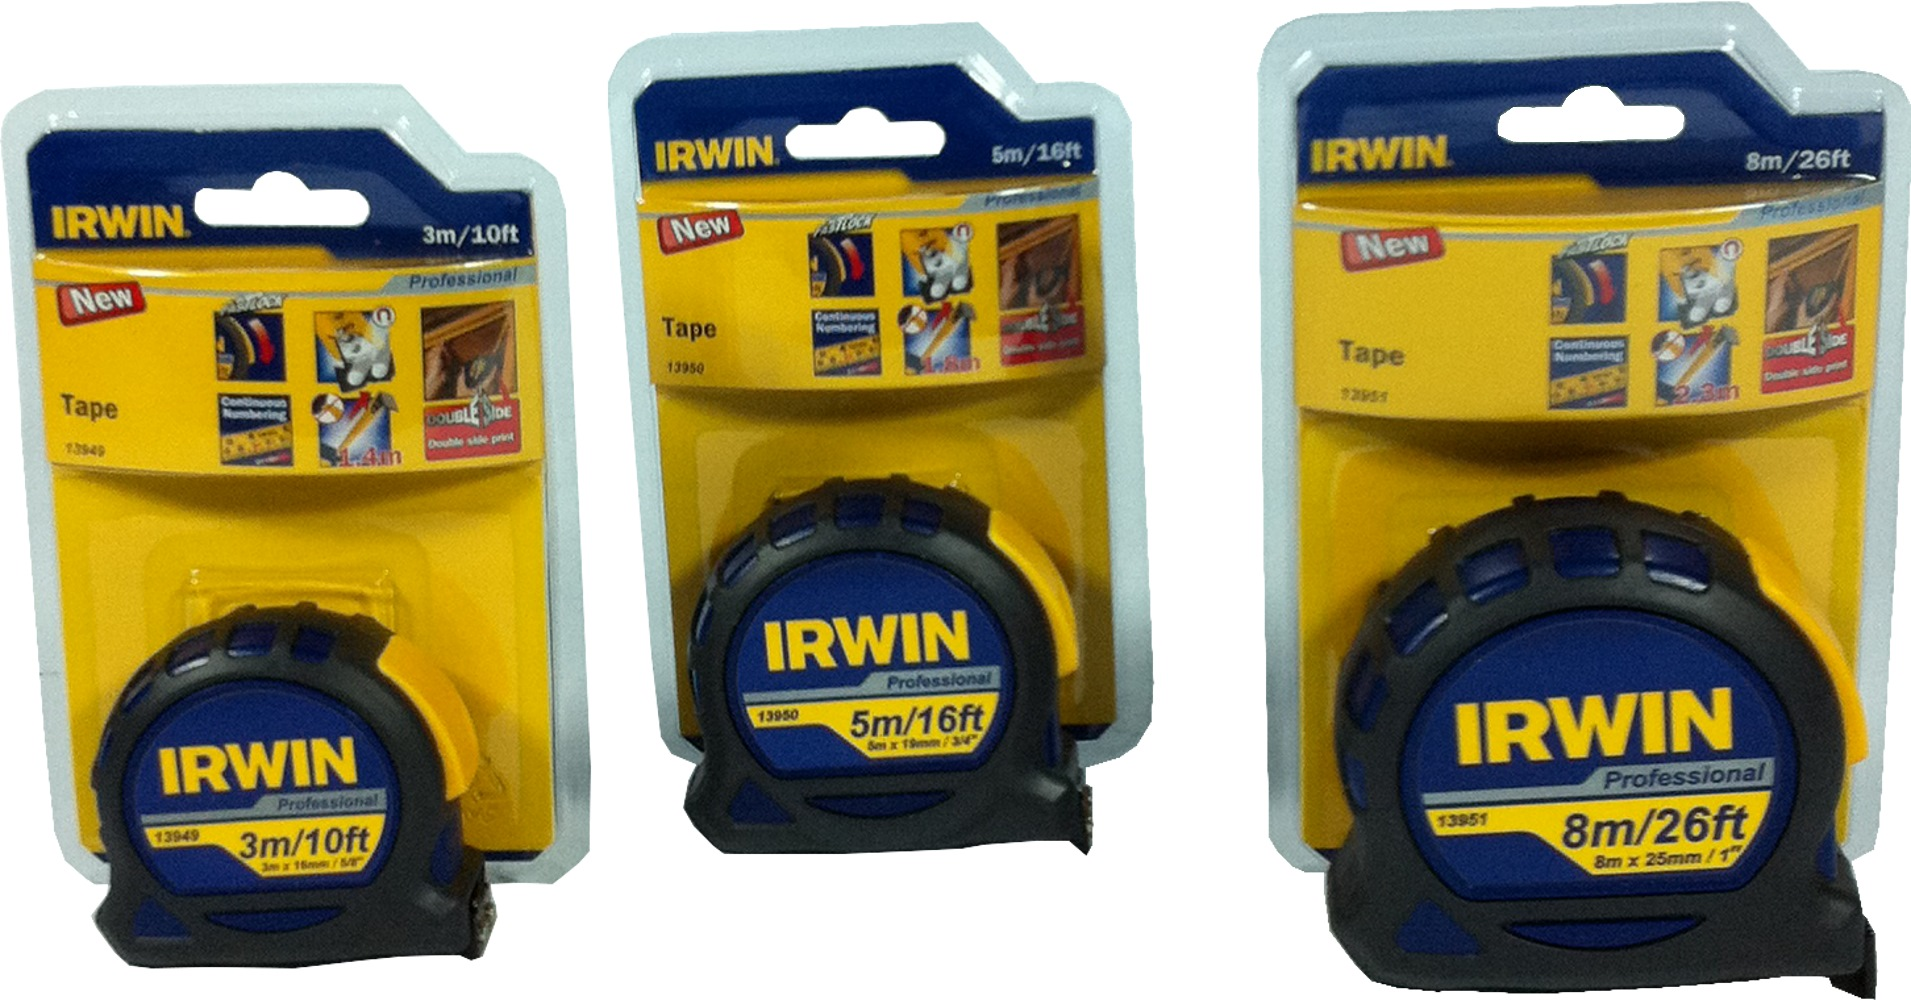 Irwin Magnetic Tip Measuring Tape